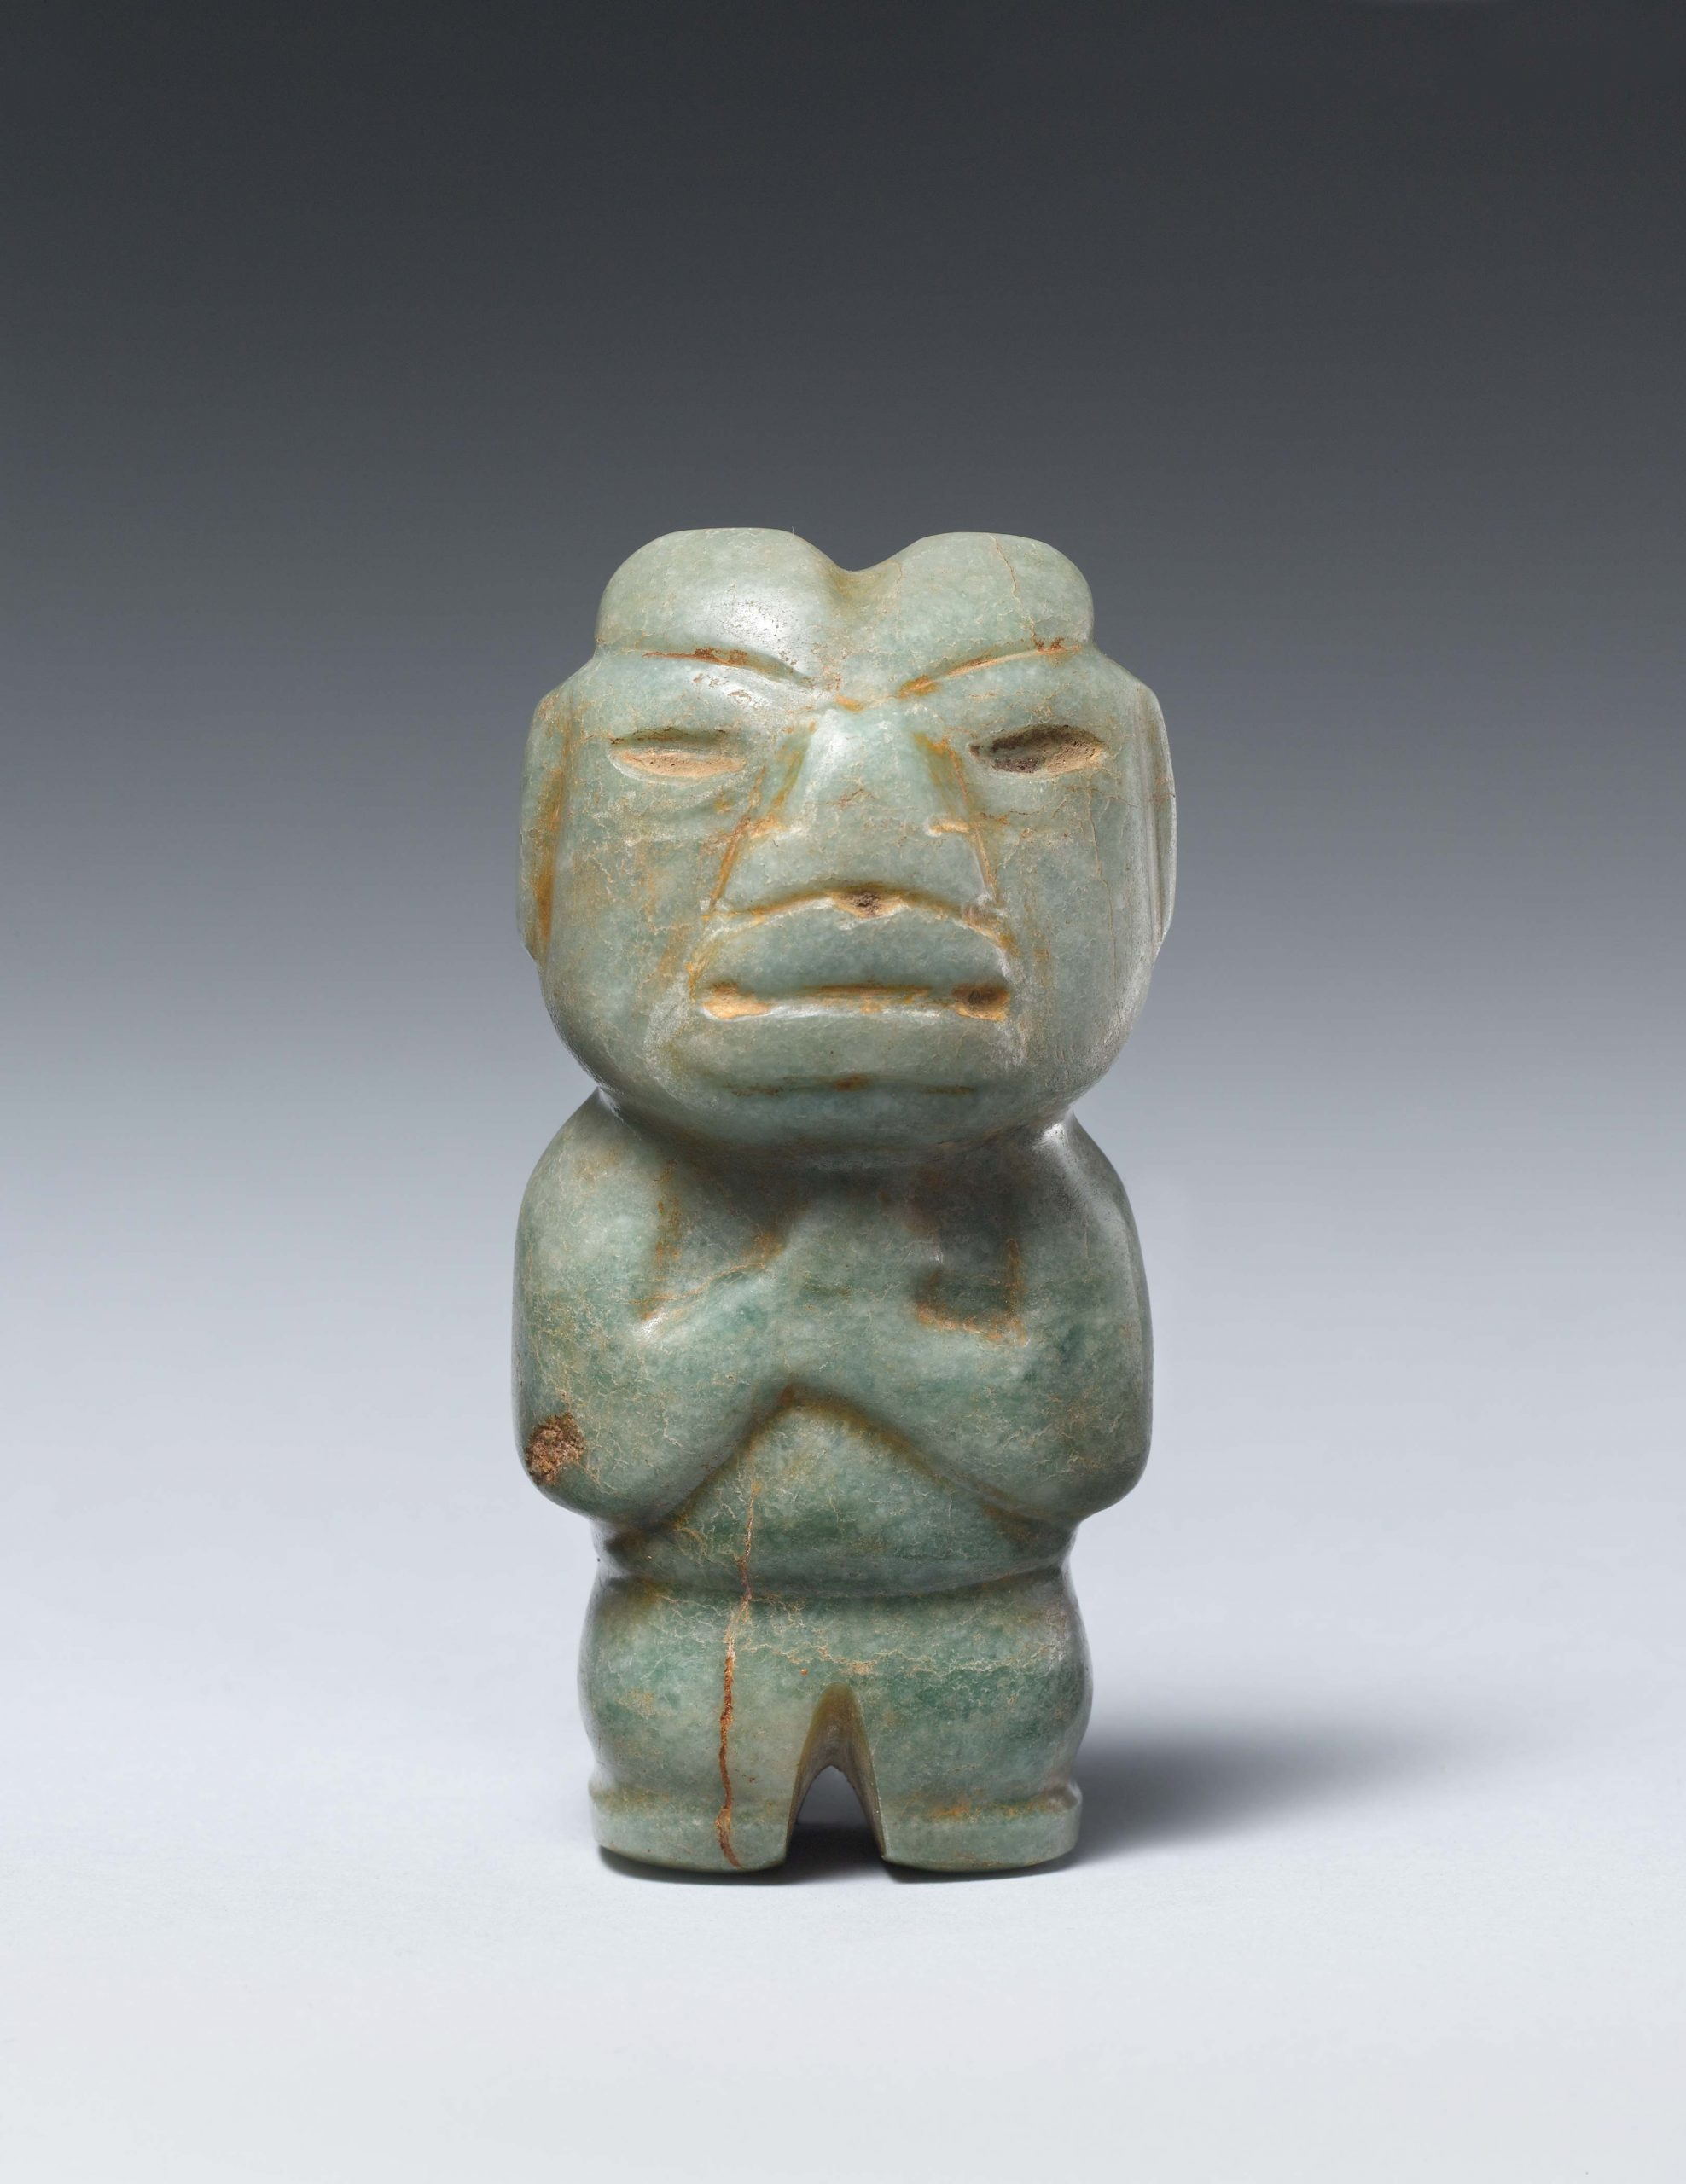 Standing stone figure of a man with stylized geometric facial features, almond-shaped eyes and rounded body parts.